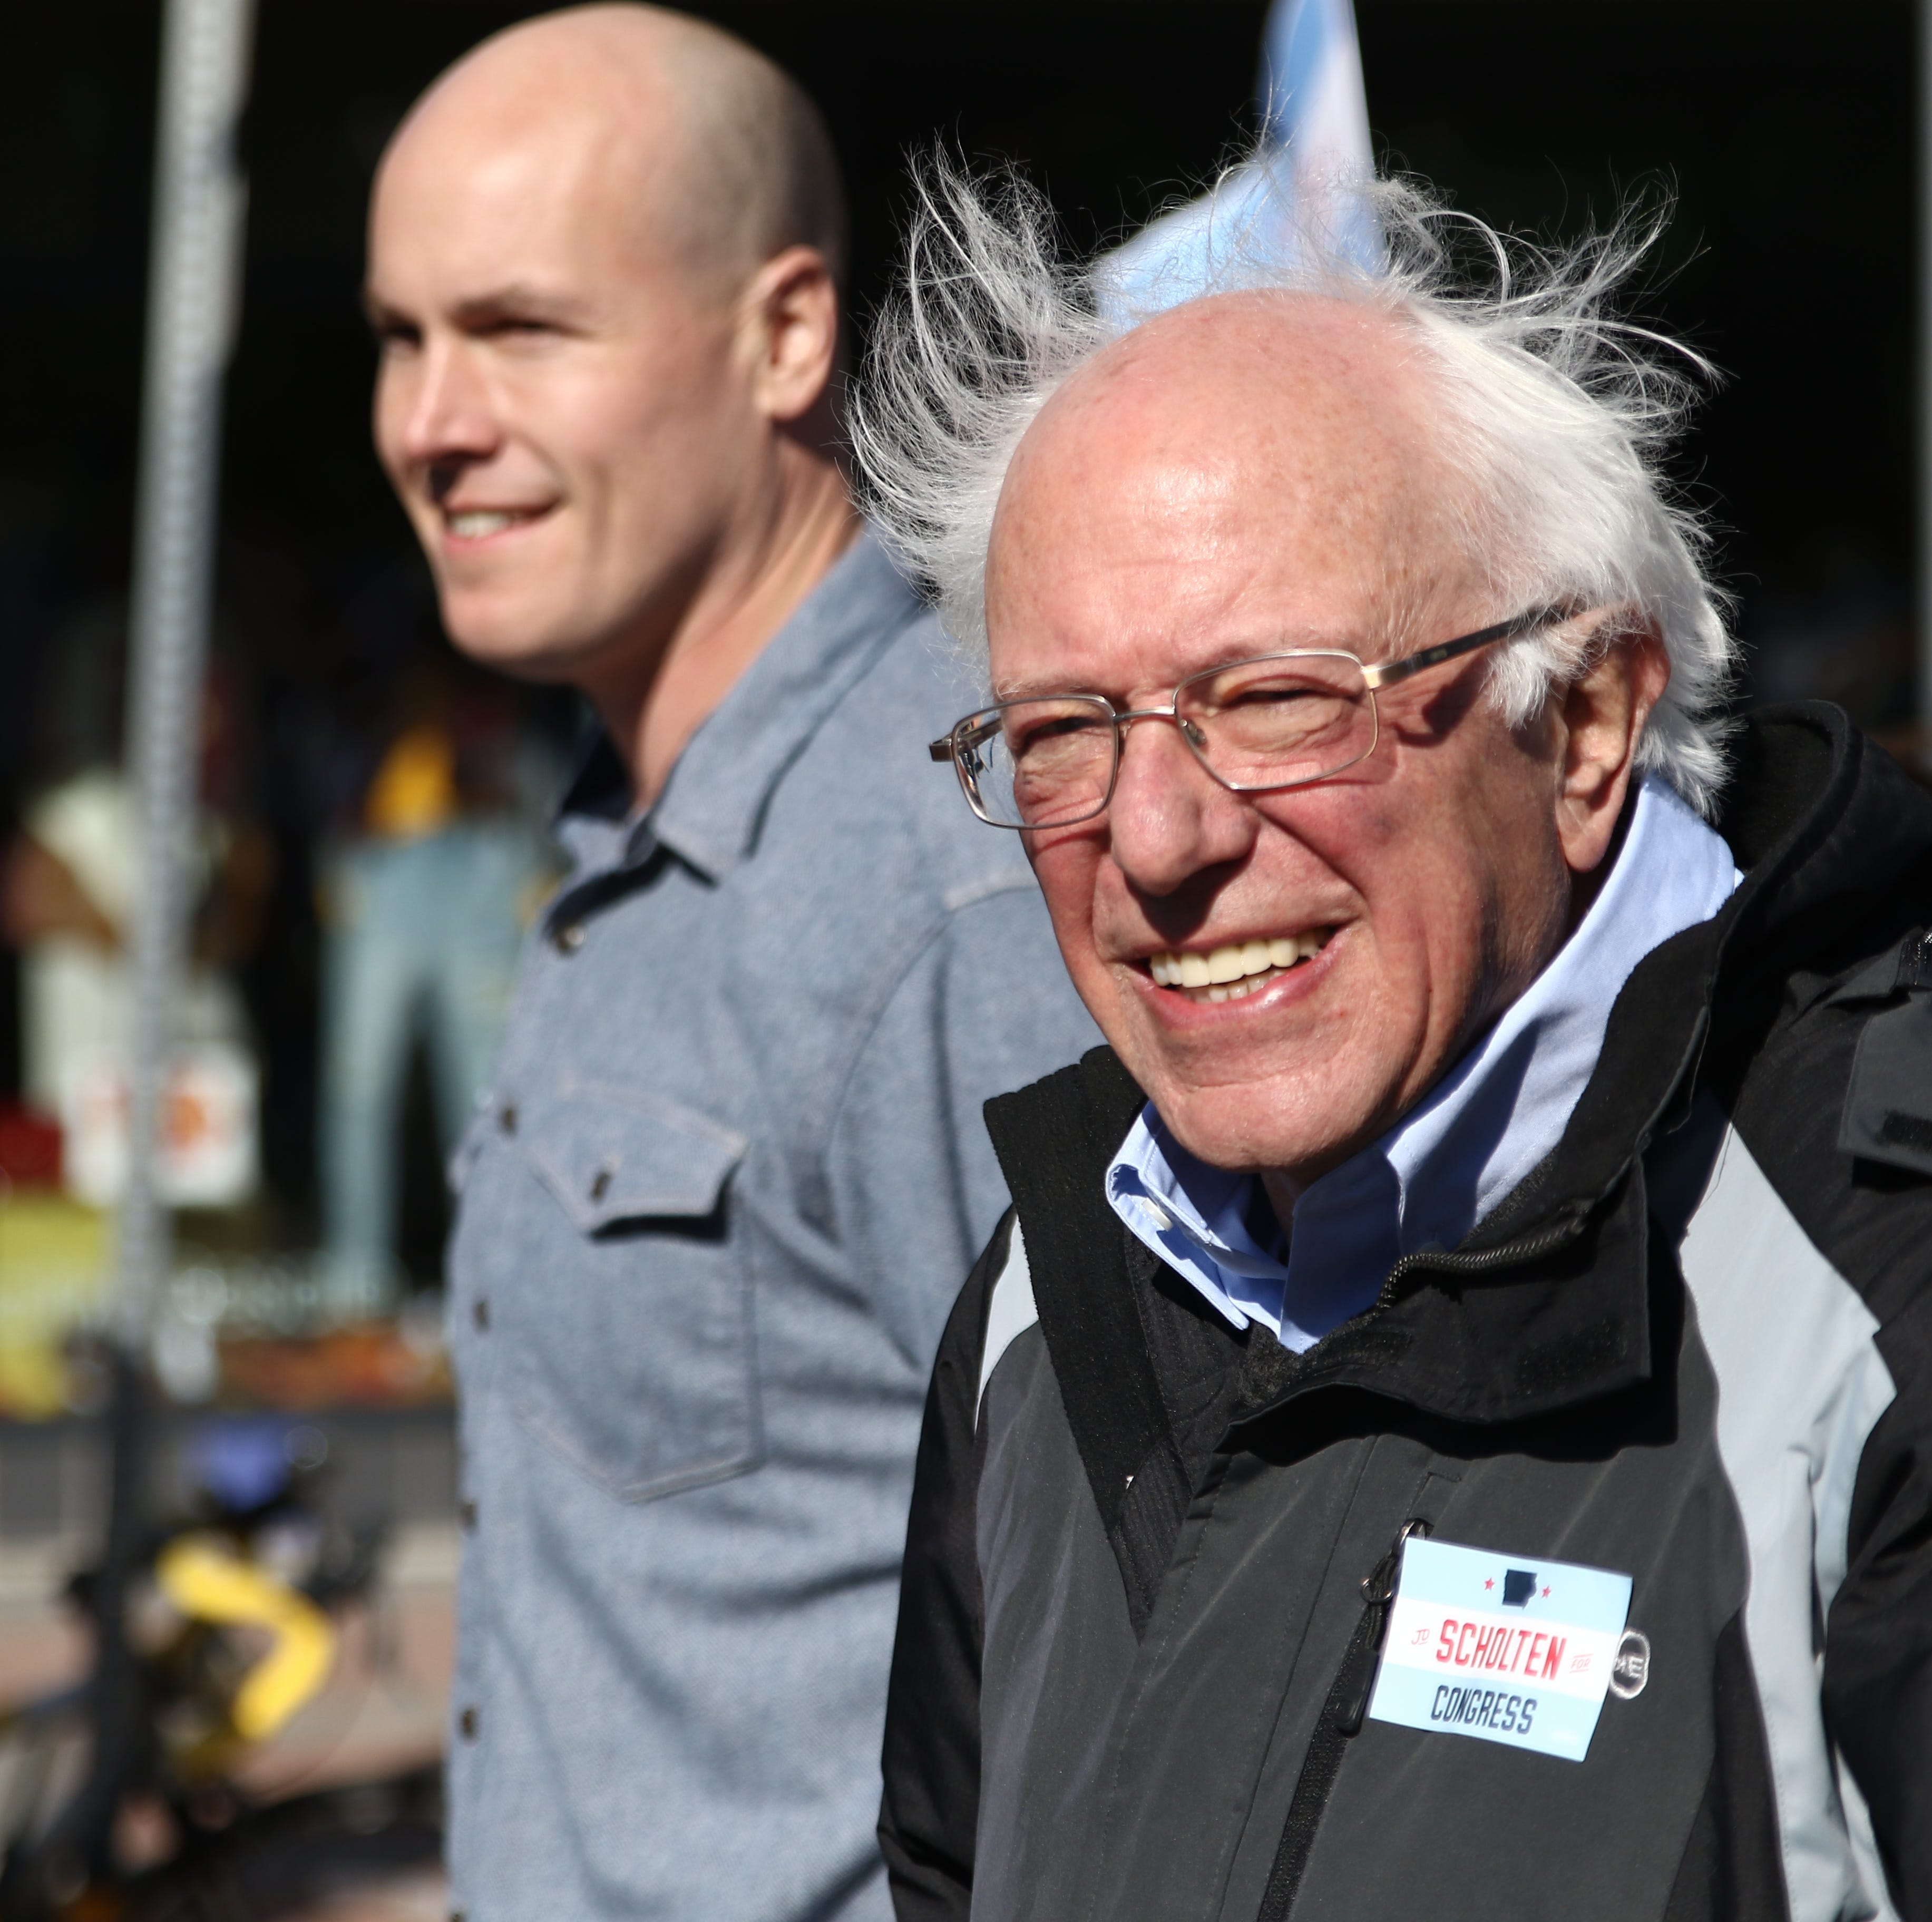 Bernie Sanders rallies Iowa Democrats for J.D. Scholten in bid to oust U.S. Rep. Steve King